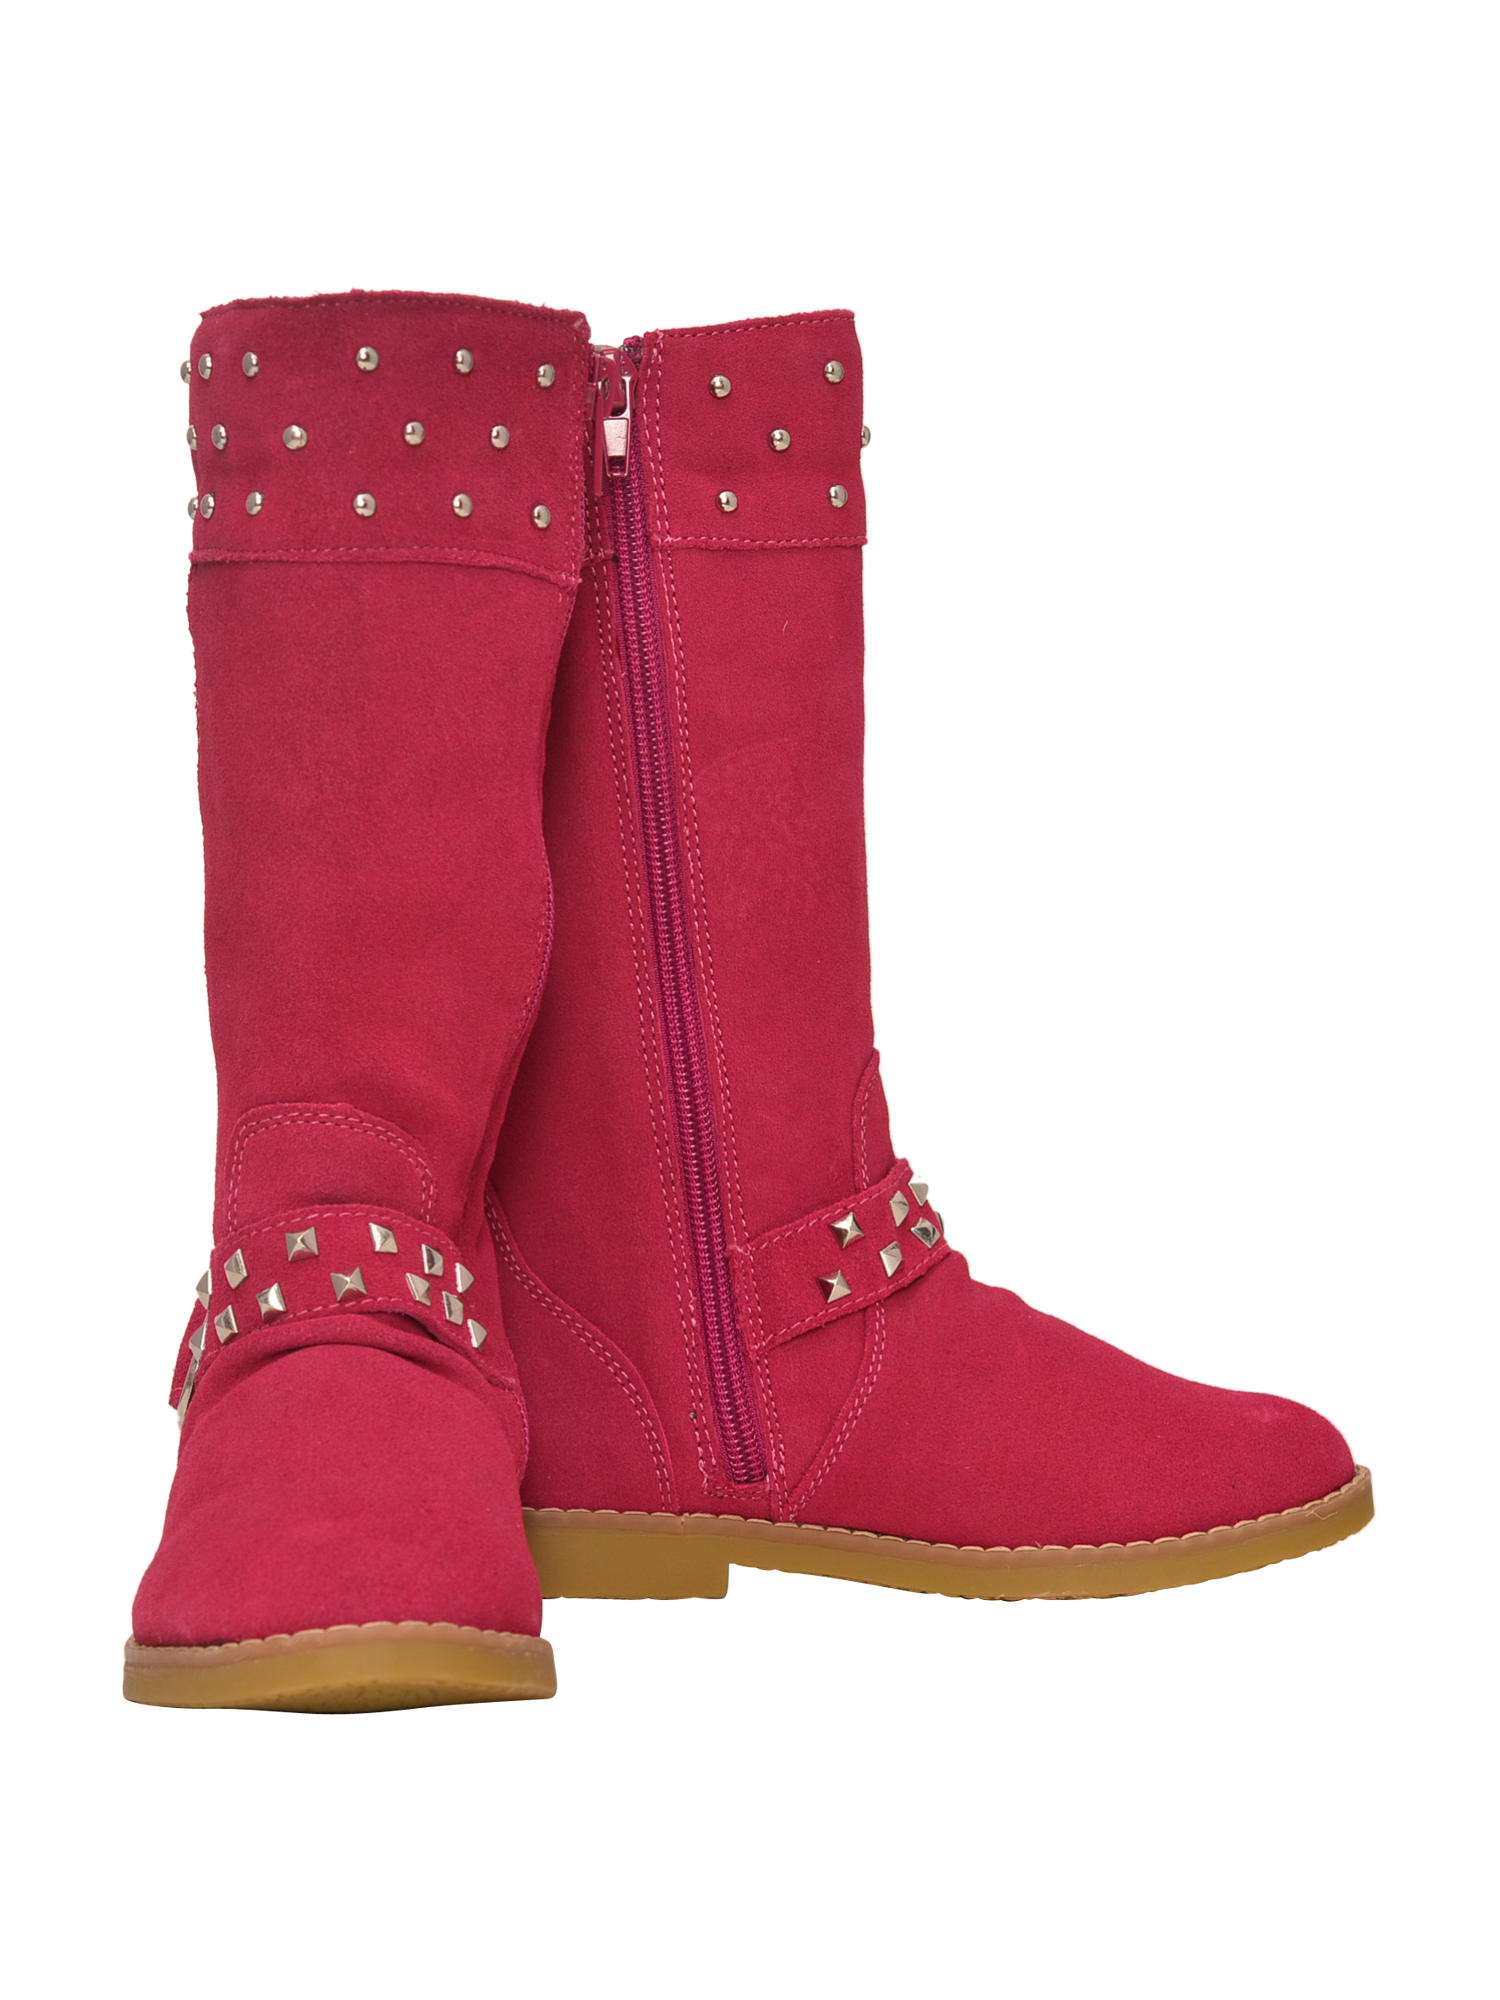 L'Amour Girls Fuchsia Suede Studded Buckle Long Boots